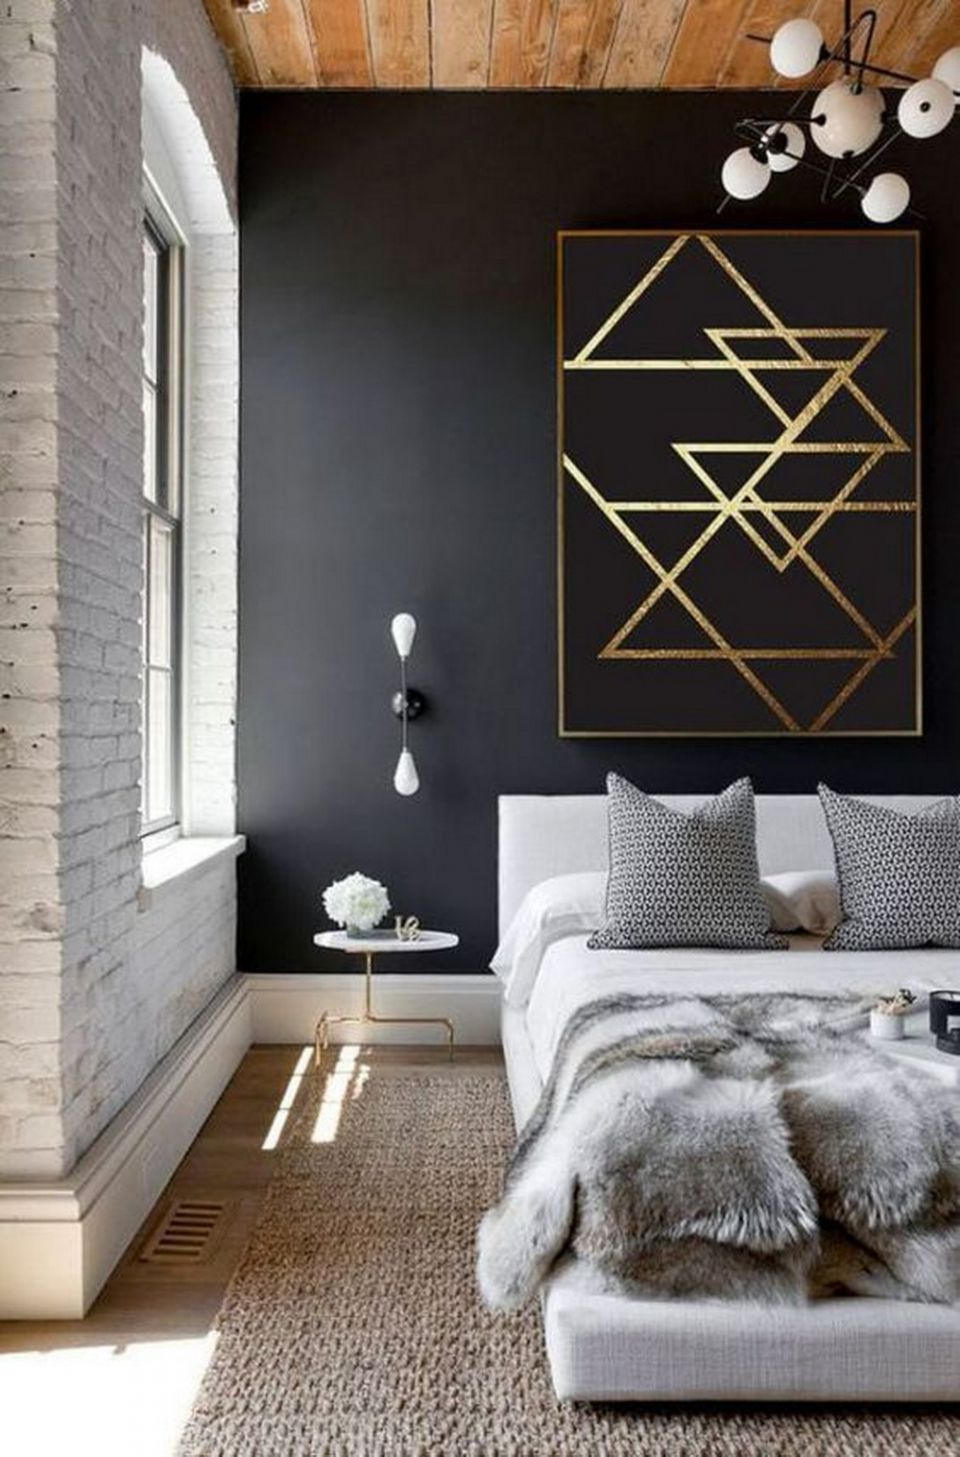 Get inspired with These Fabulous Interior Design Ideas interior design ideas Get Inspired with These Fabulous Interior Design Ideas Get inspired with These Fabulous Interior Design Ideas 4